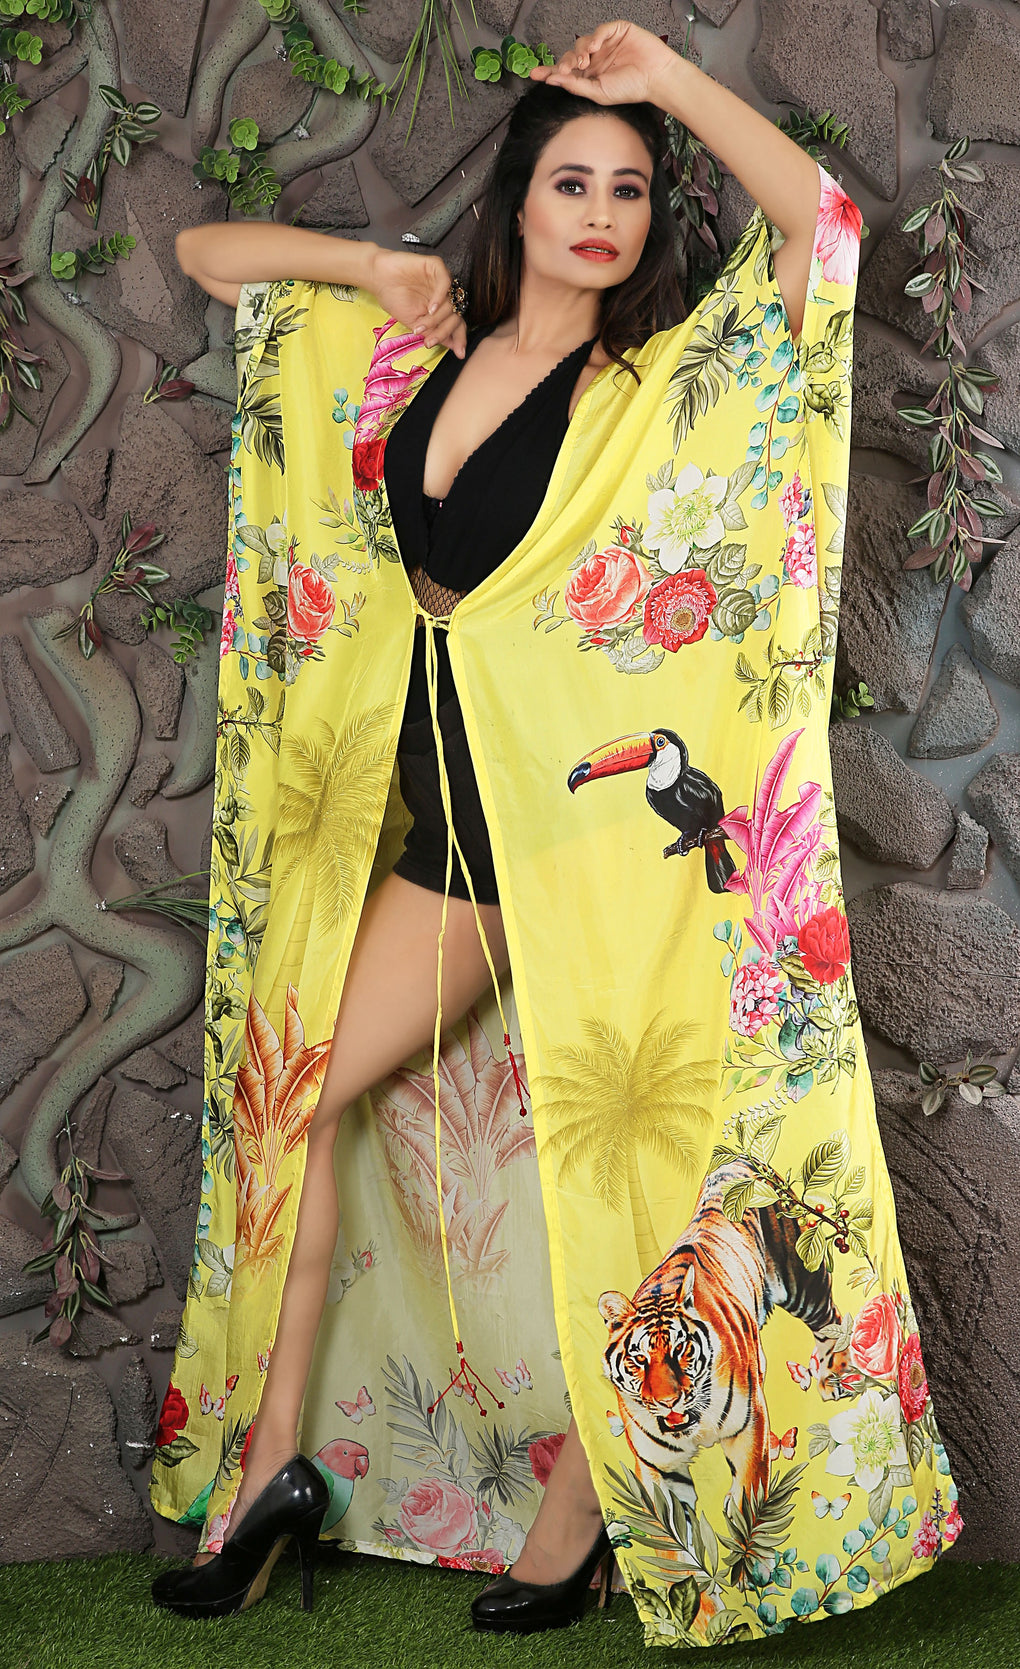 Beach Kimono Cover-up with Animal floral print and belt to tighten